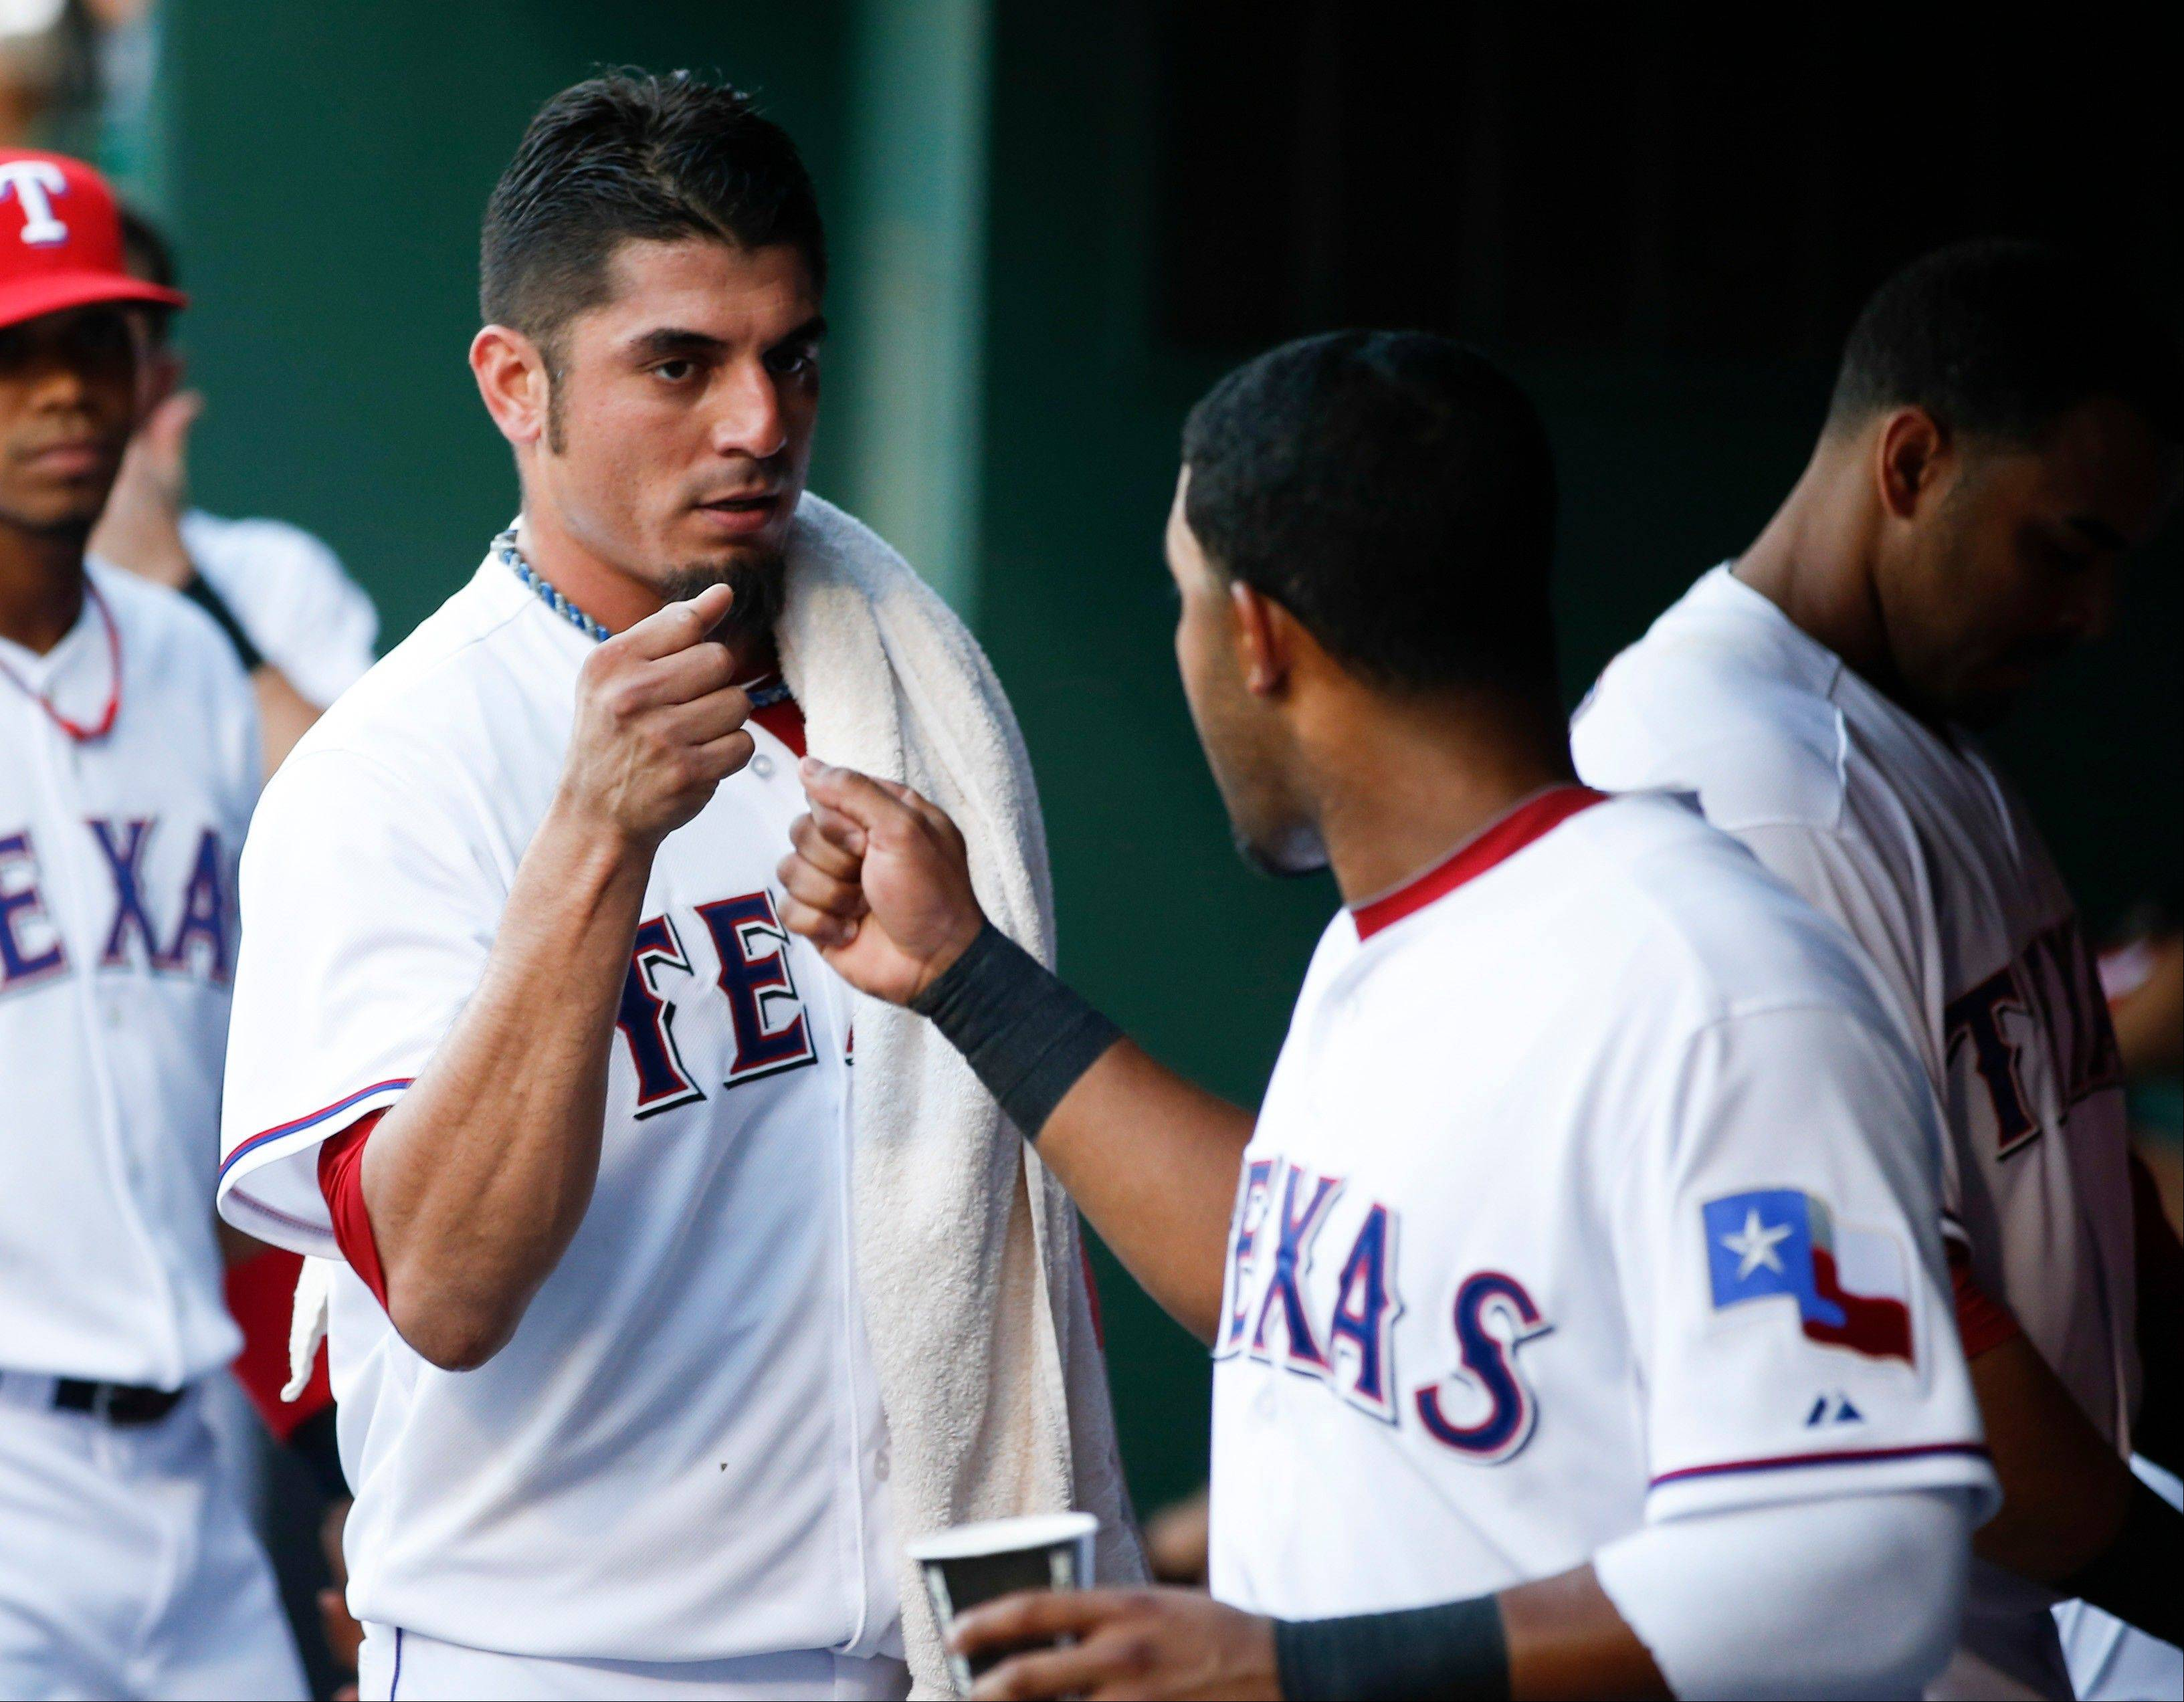 Matt Garza, left, fist-bumps Rangers teammate Elvis Andrus after pitching in the third inning against the Yankees on Wednesday. Garza had an impressive run with the Cubs, but the North Siders did the right thing in acquiring some nice prospects last week in a trade, according to Len Kasper.